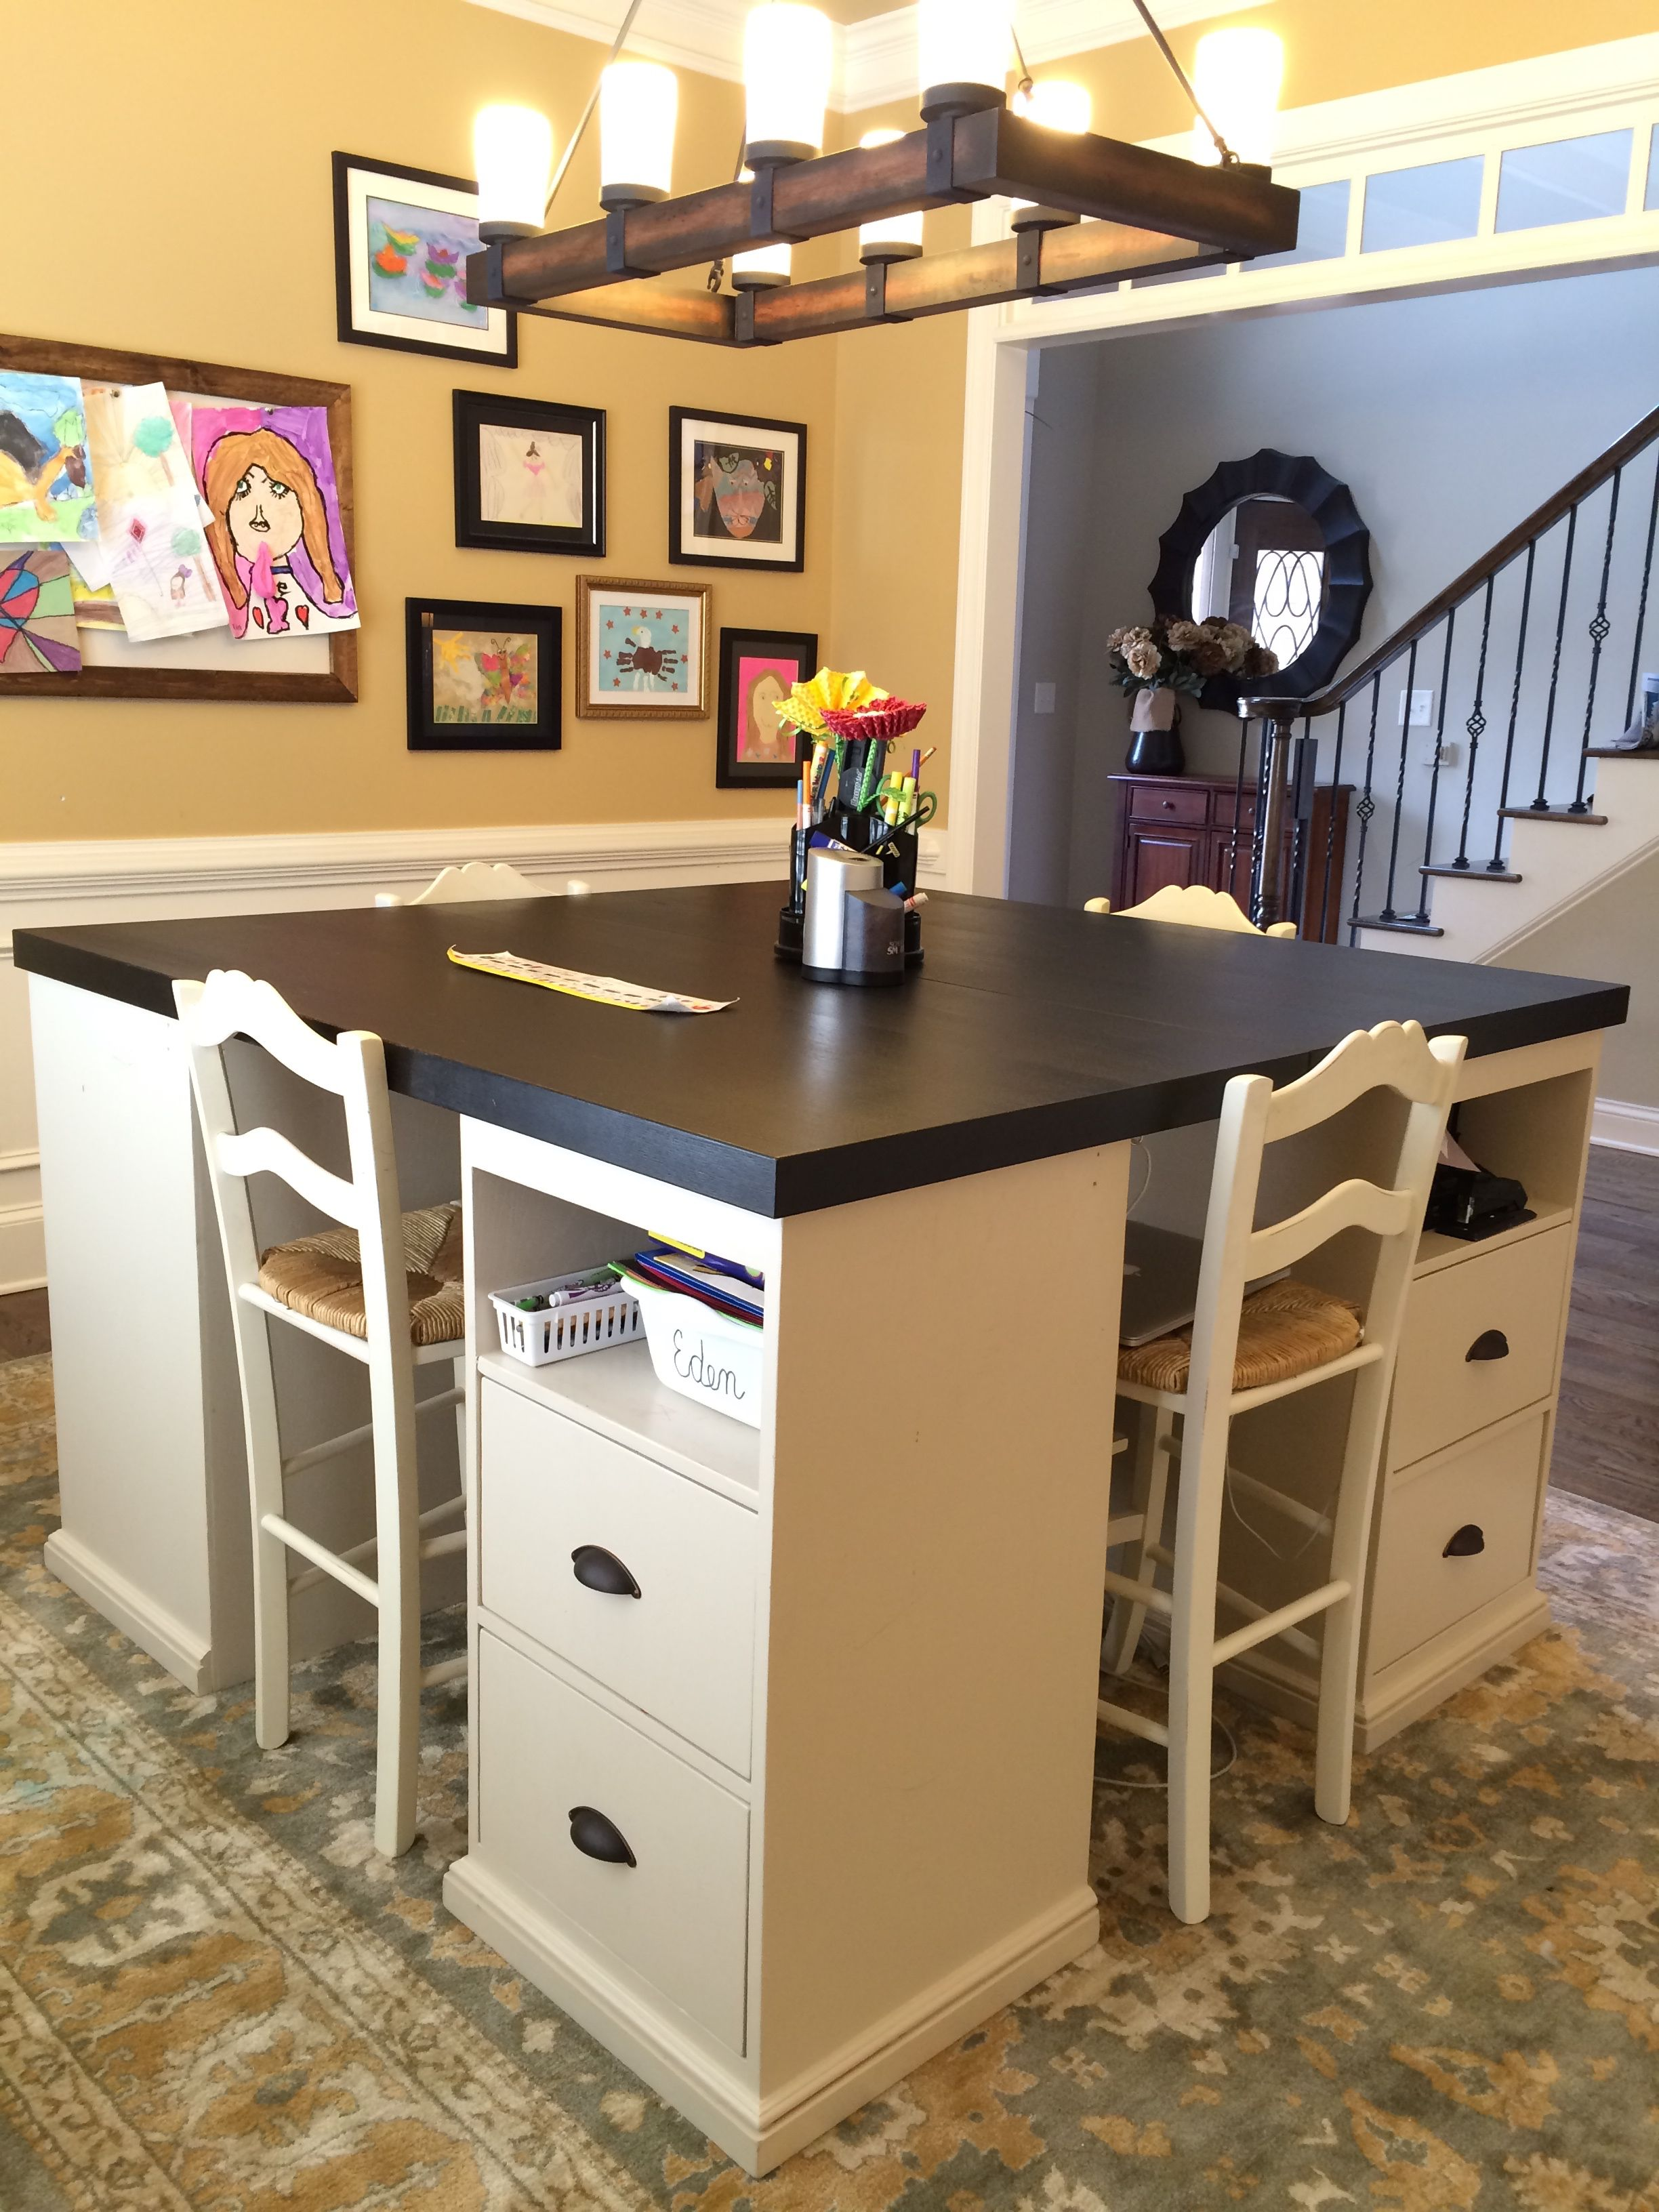 Four station desk pb inspired do it yourself home projects from four station desk pb inspired diy projects muebles art decomuebles solutioingenieria Choice Image